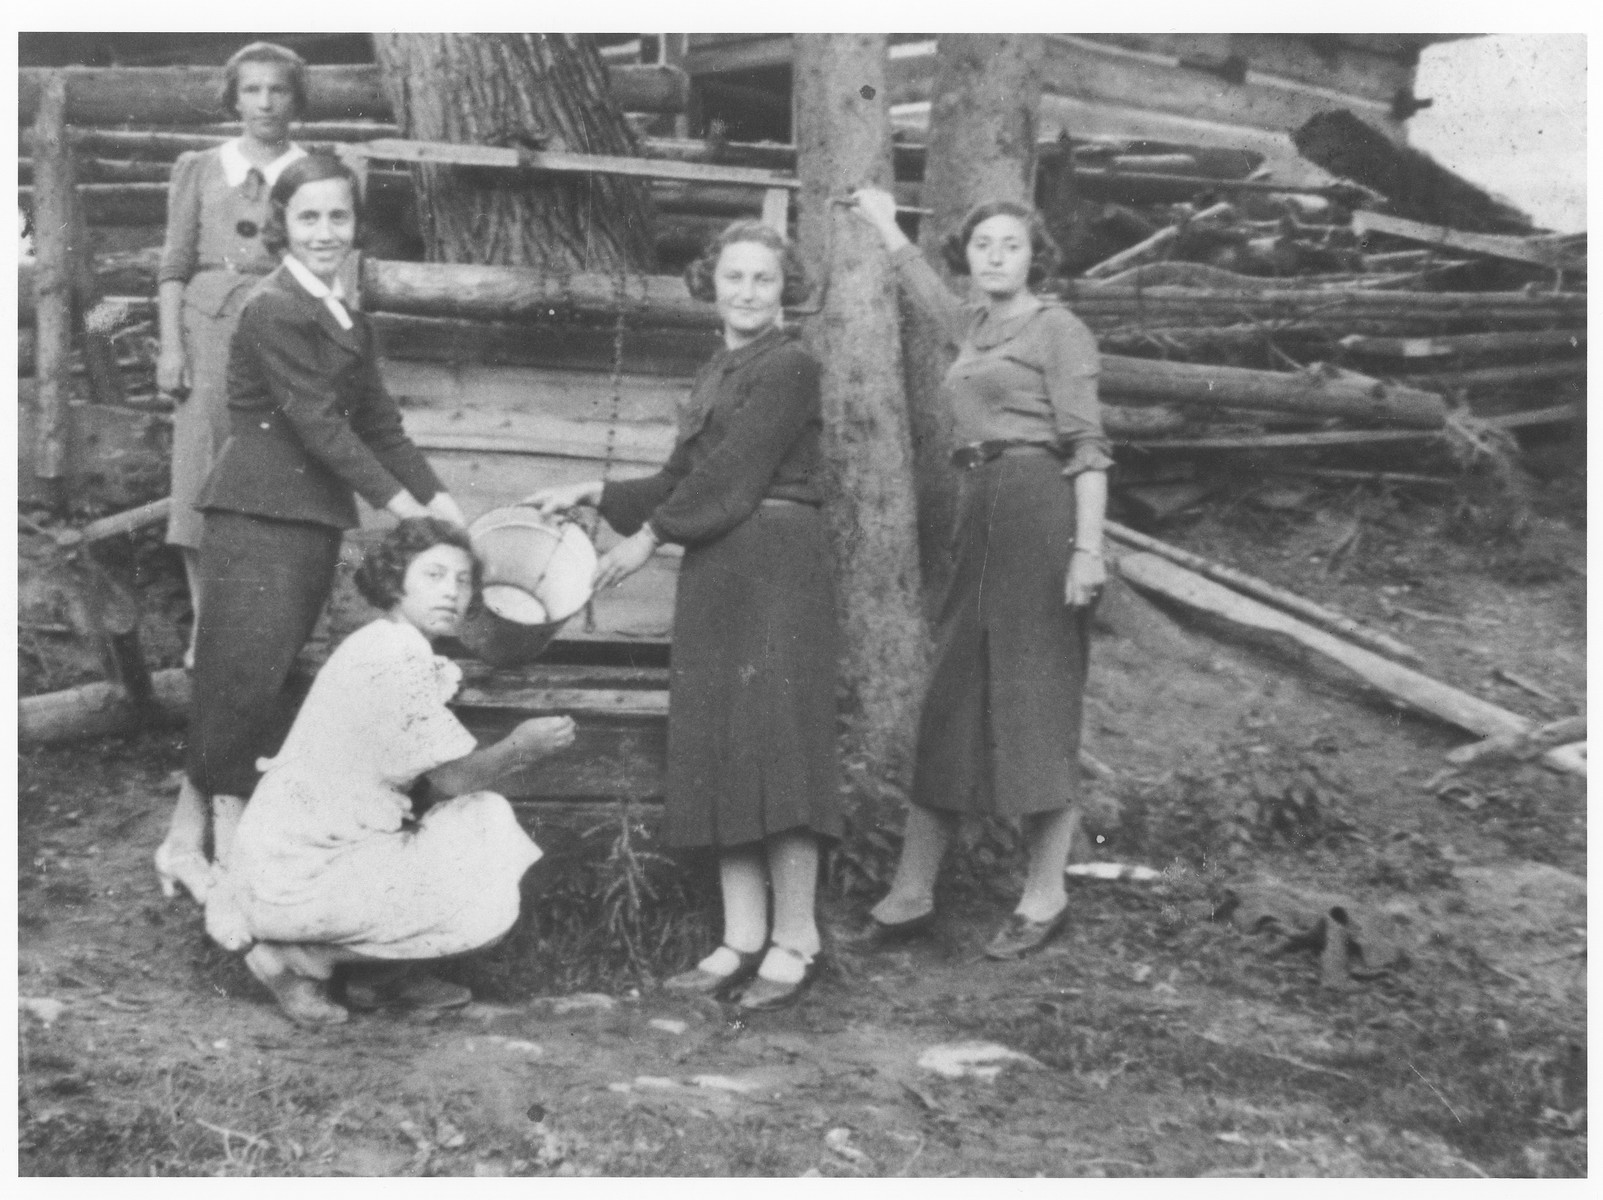 Five friends from the Beit Yaakov school draw water from a well in Zakopane.   Among those pictured is Gusta Gerstner.